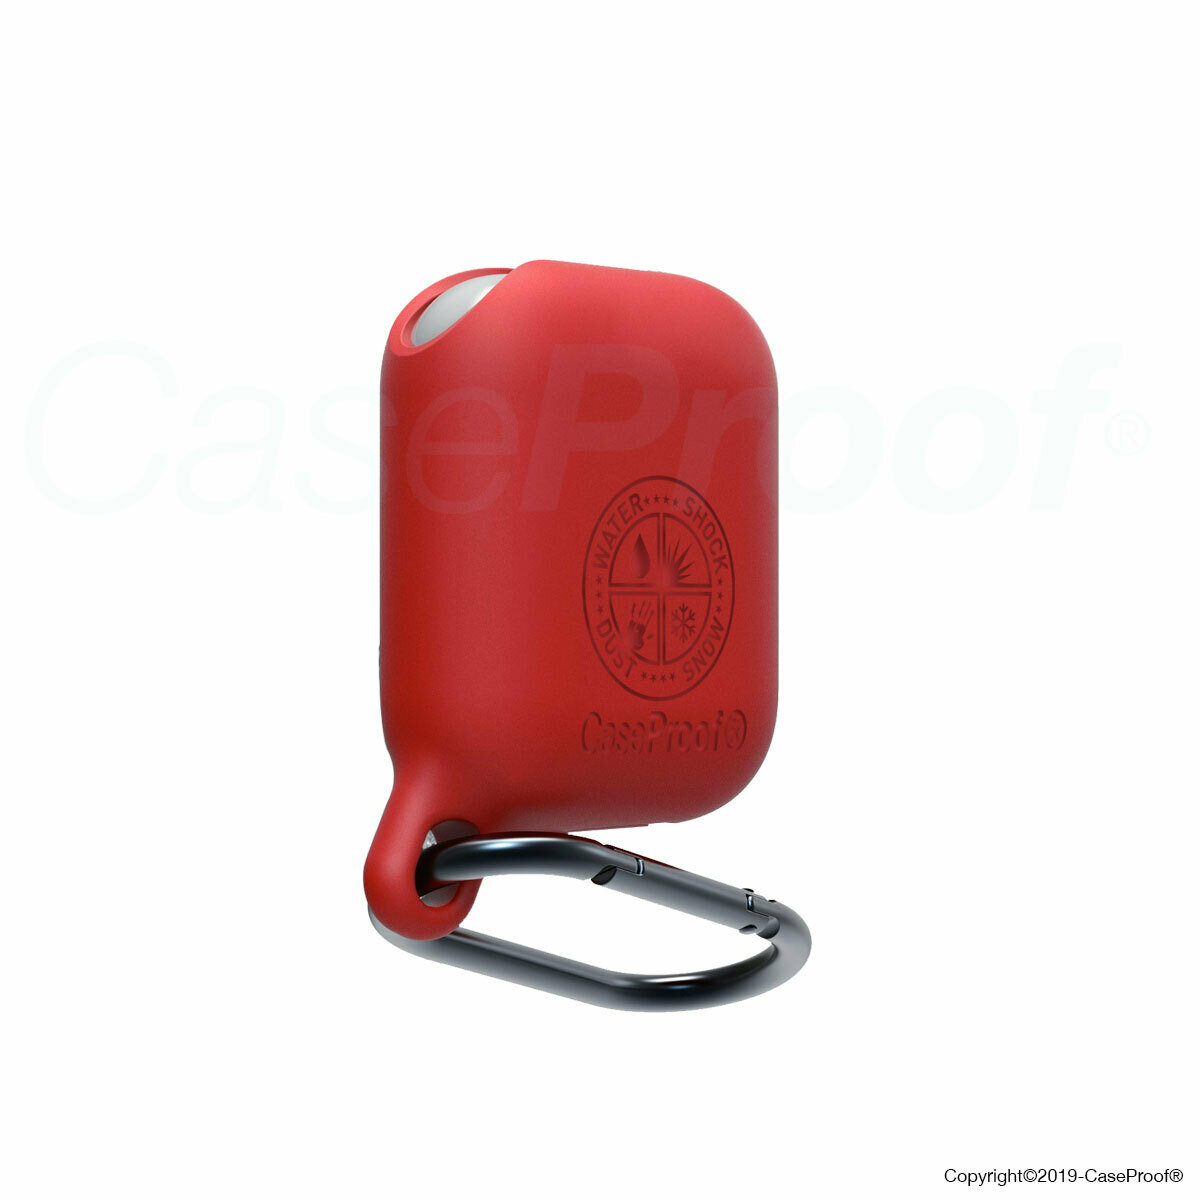 CaseProof Waterproof AirPods Case for AirPods red